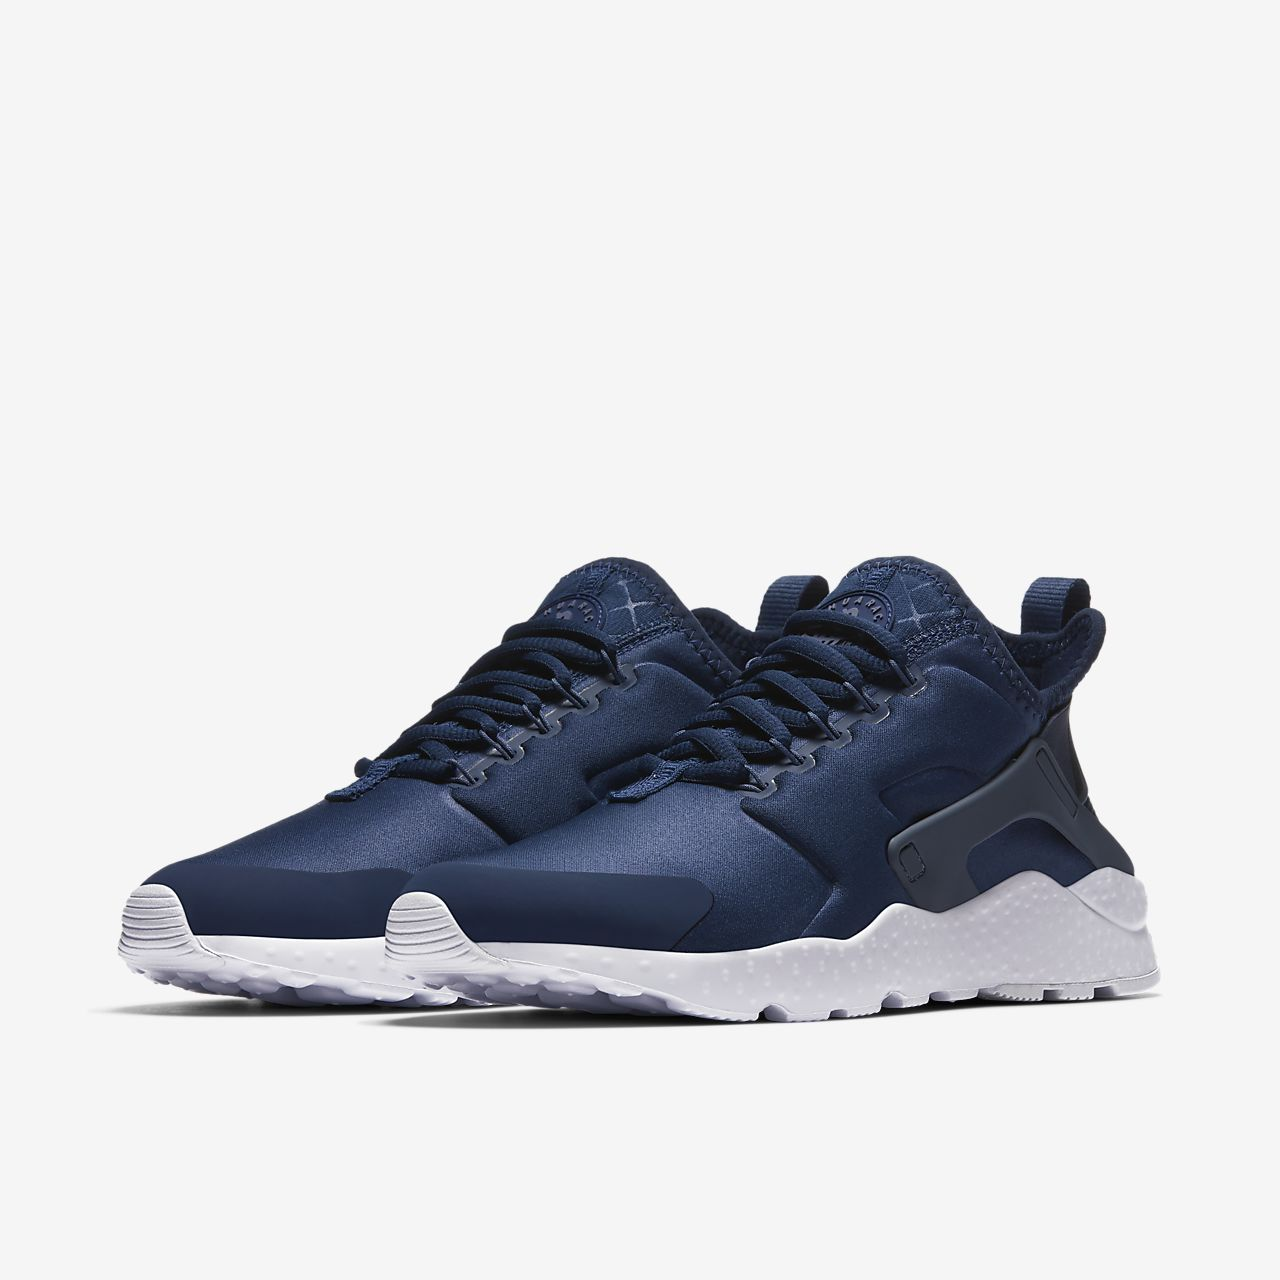 NIKE AIR HUARACHE Diffused Blue/Obsidian WOMEN'S COMFY SHOE LIFESTYLE SNEAKER